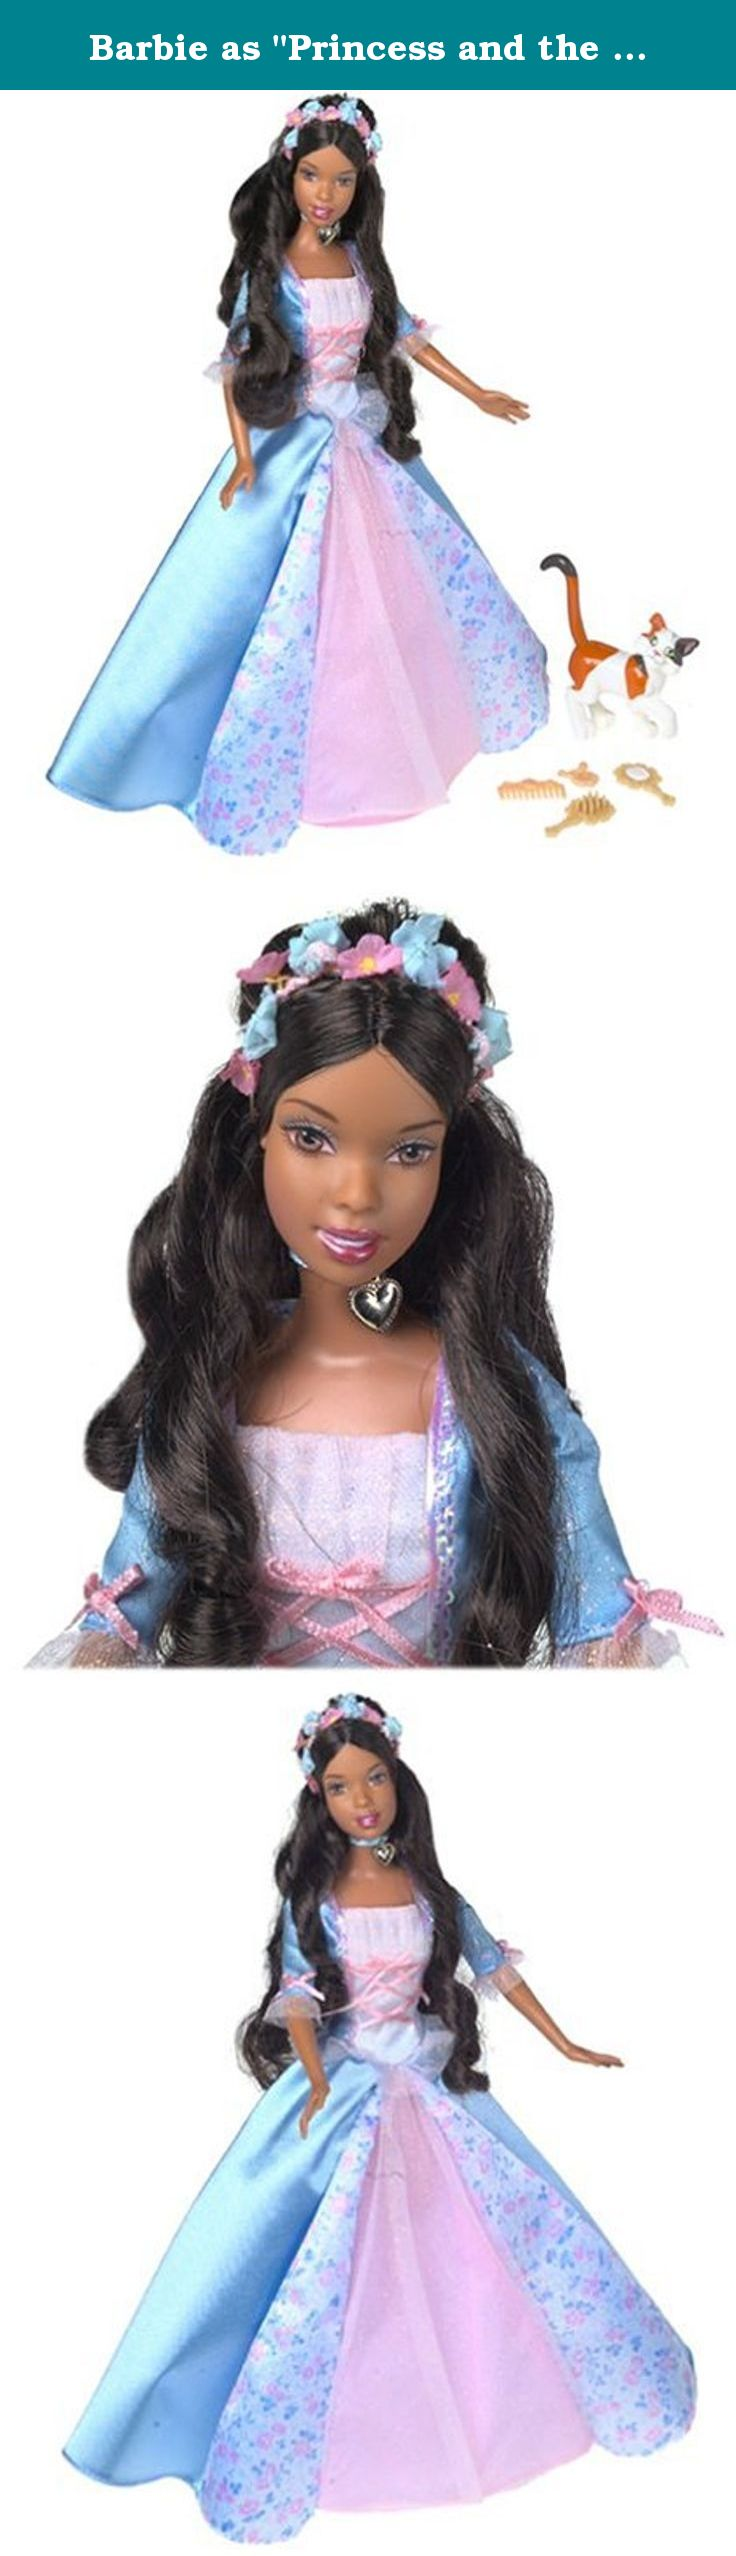 Pin on Clothing & Shoes, Doll Accessories, Dolls ...